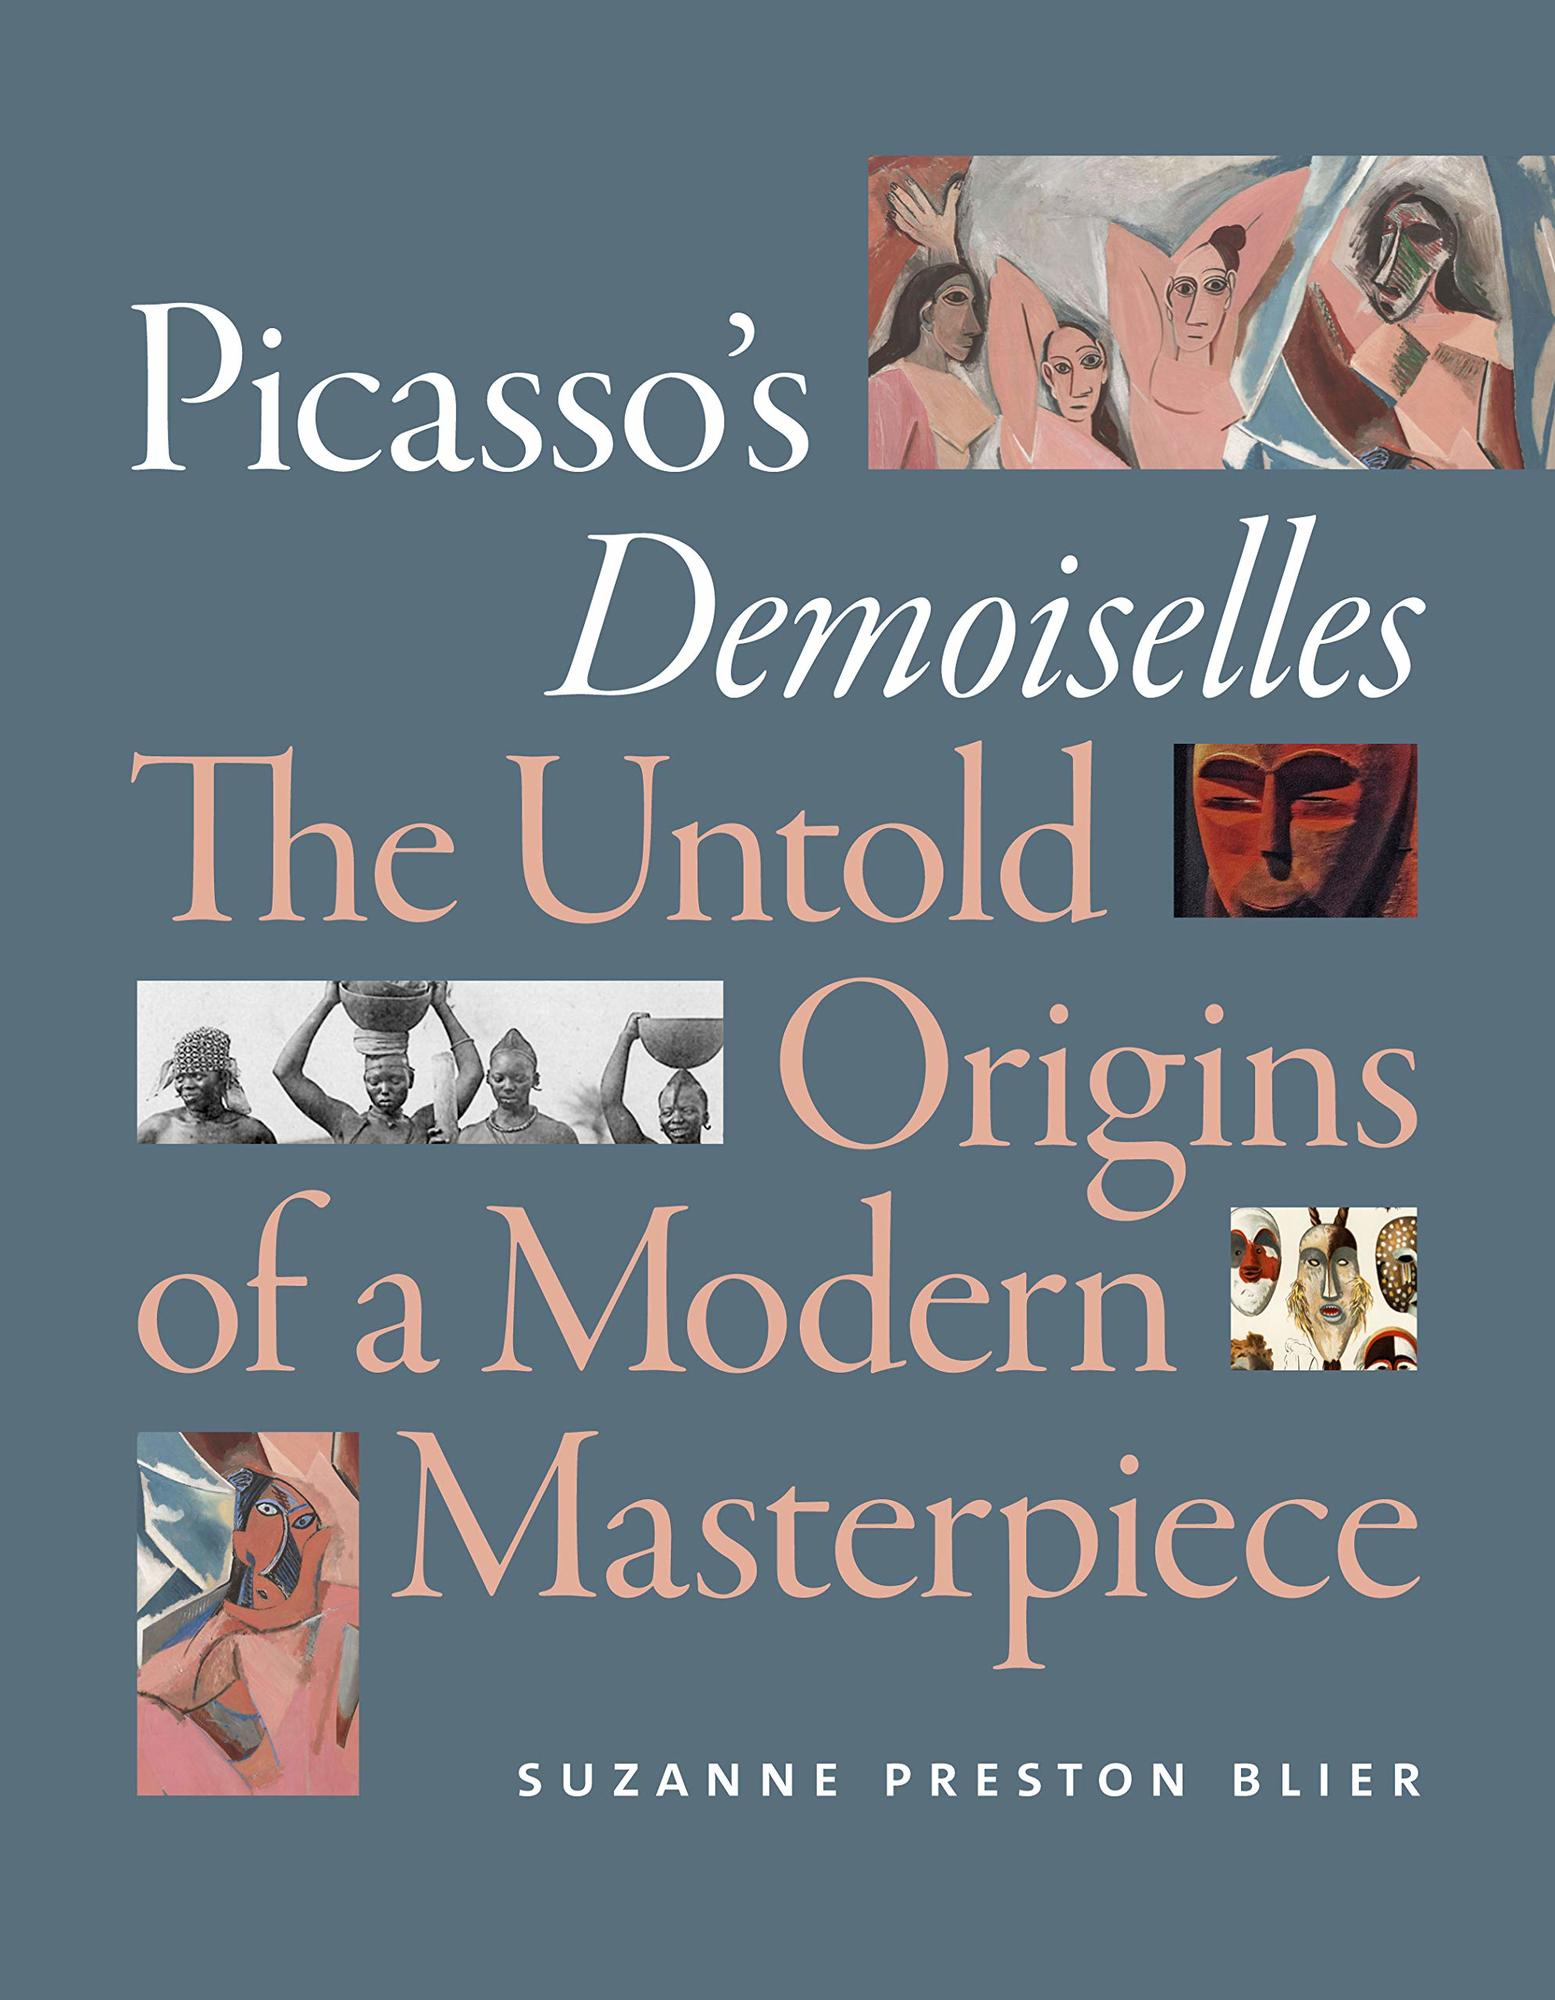 Picasso's Demoiselles: The Untold Origins of a Modern Masterpiece